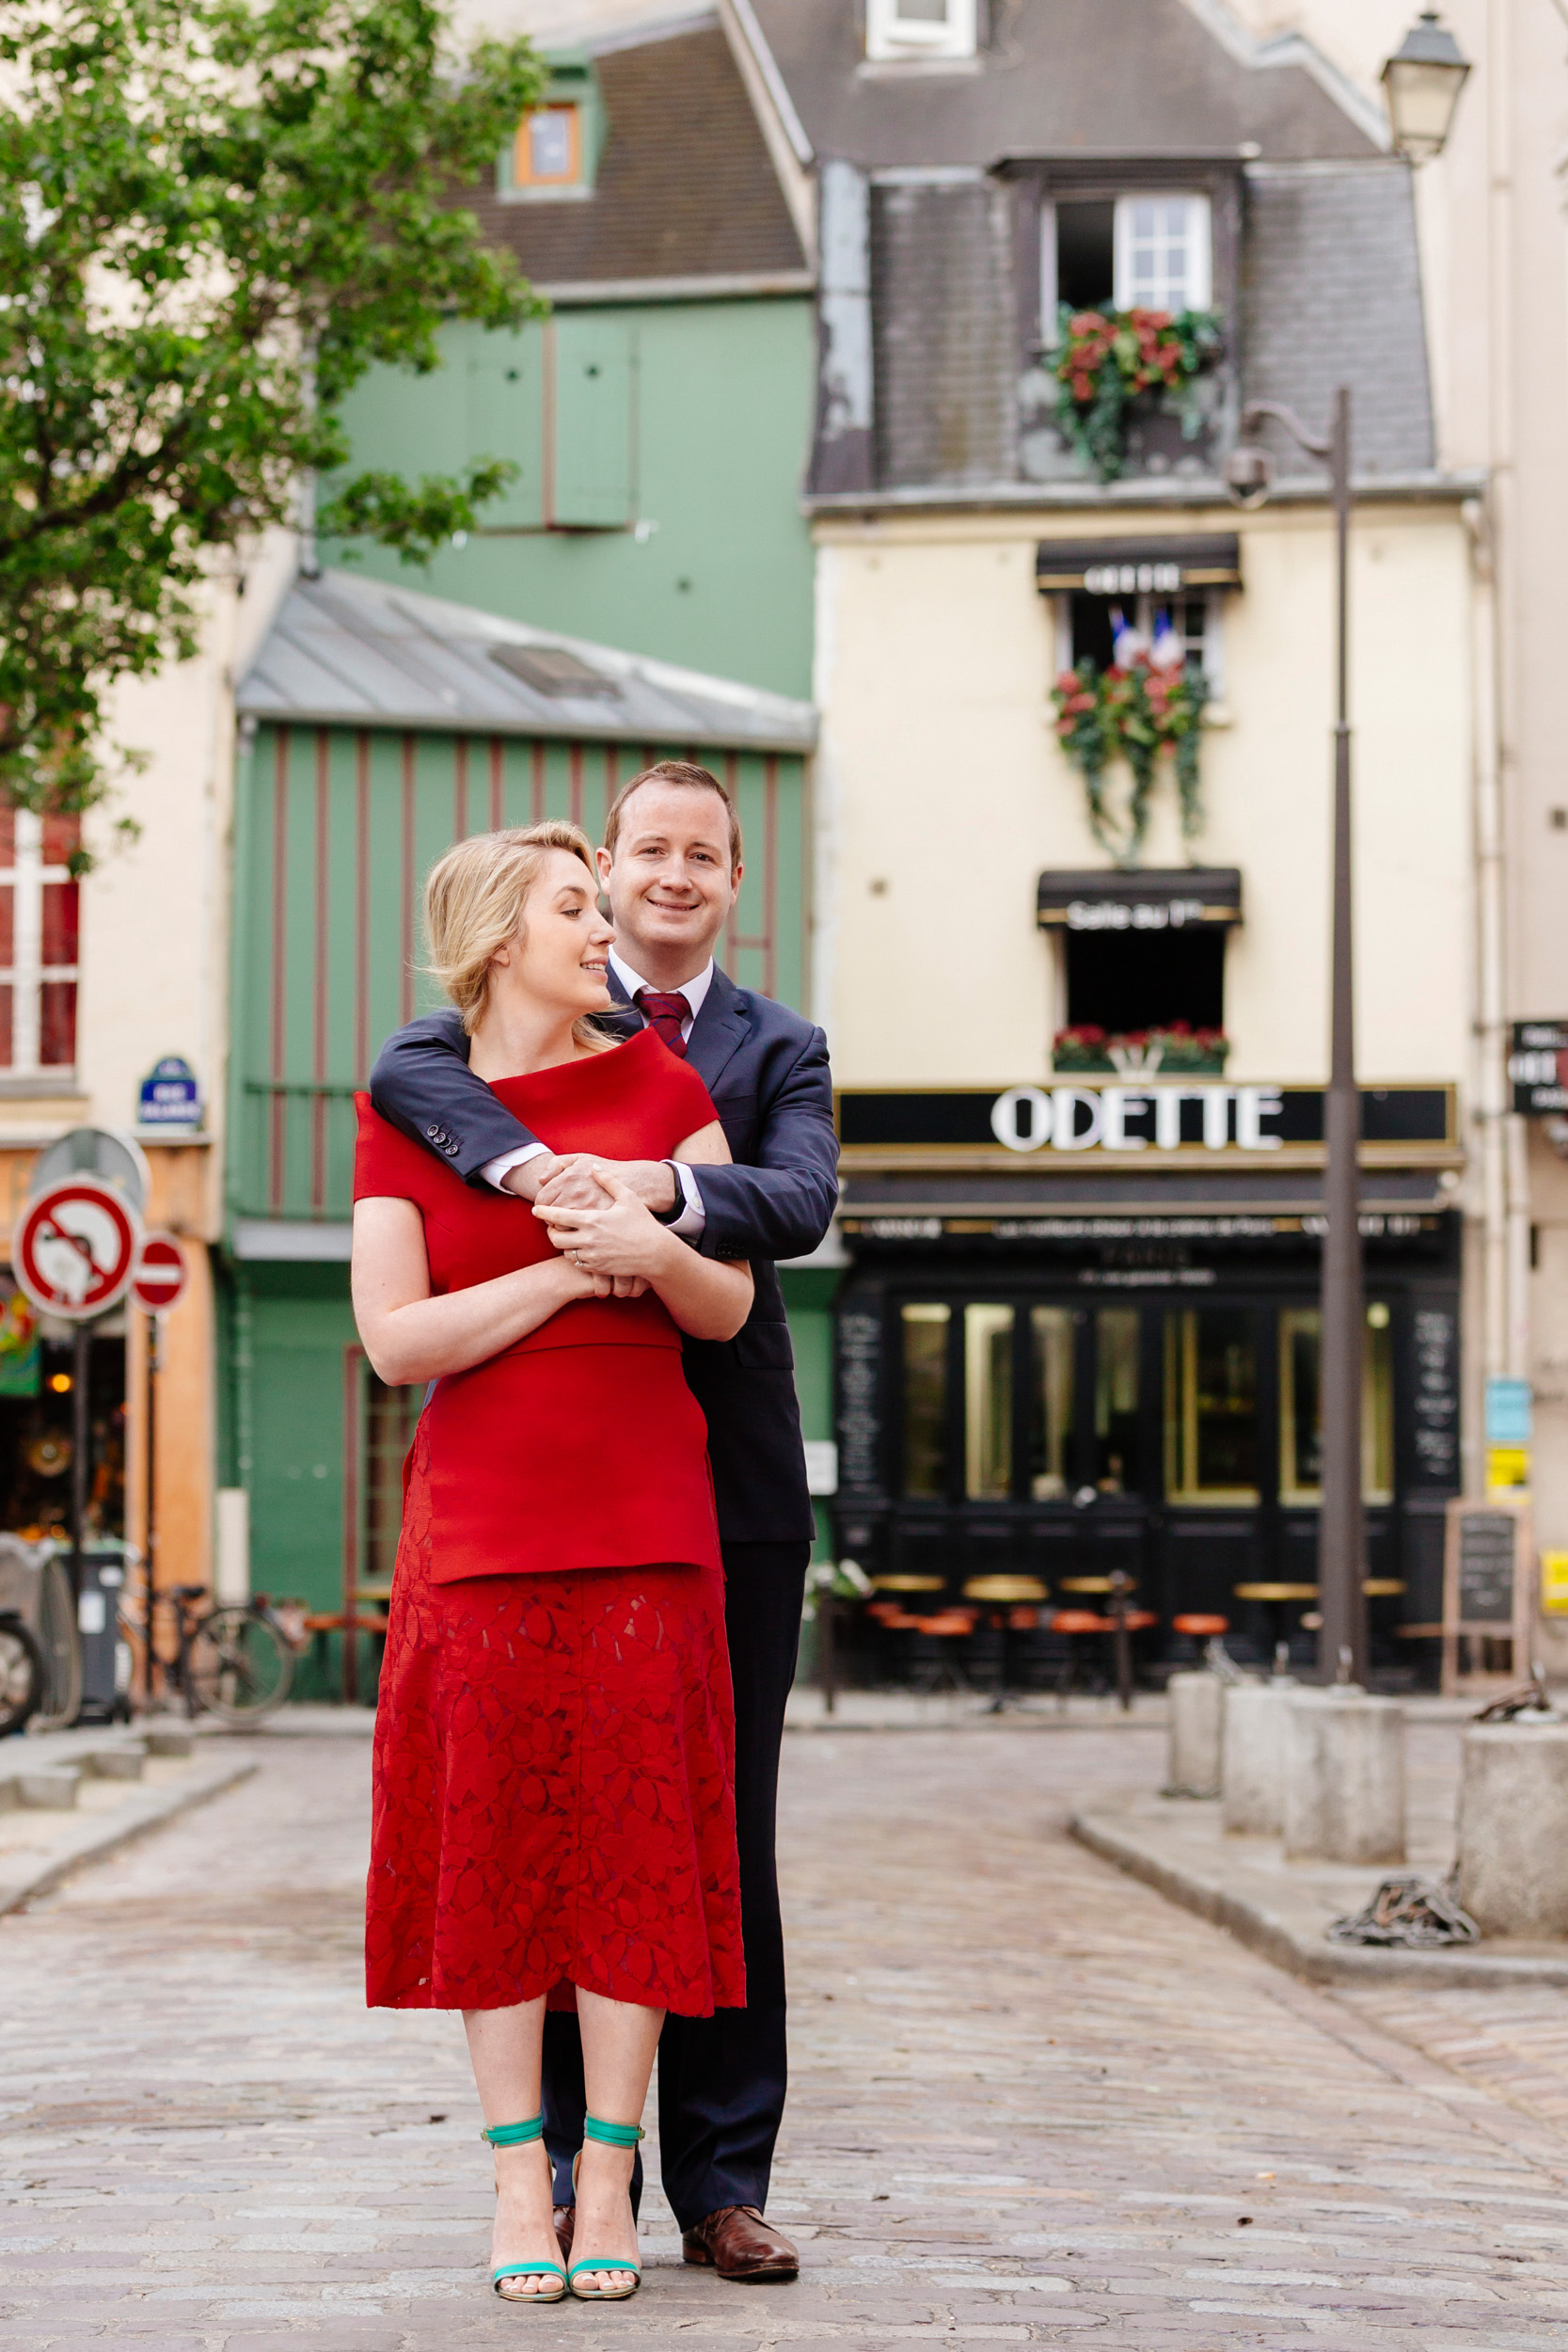 Romantic portrait of a couple hugging in front of cafe Odette in Saint Germain captured by Paris Photographer Federico Guendel www.iheartparis.fr